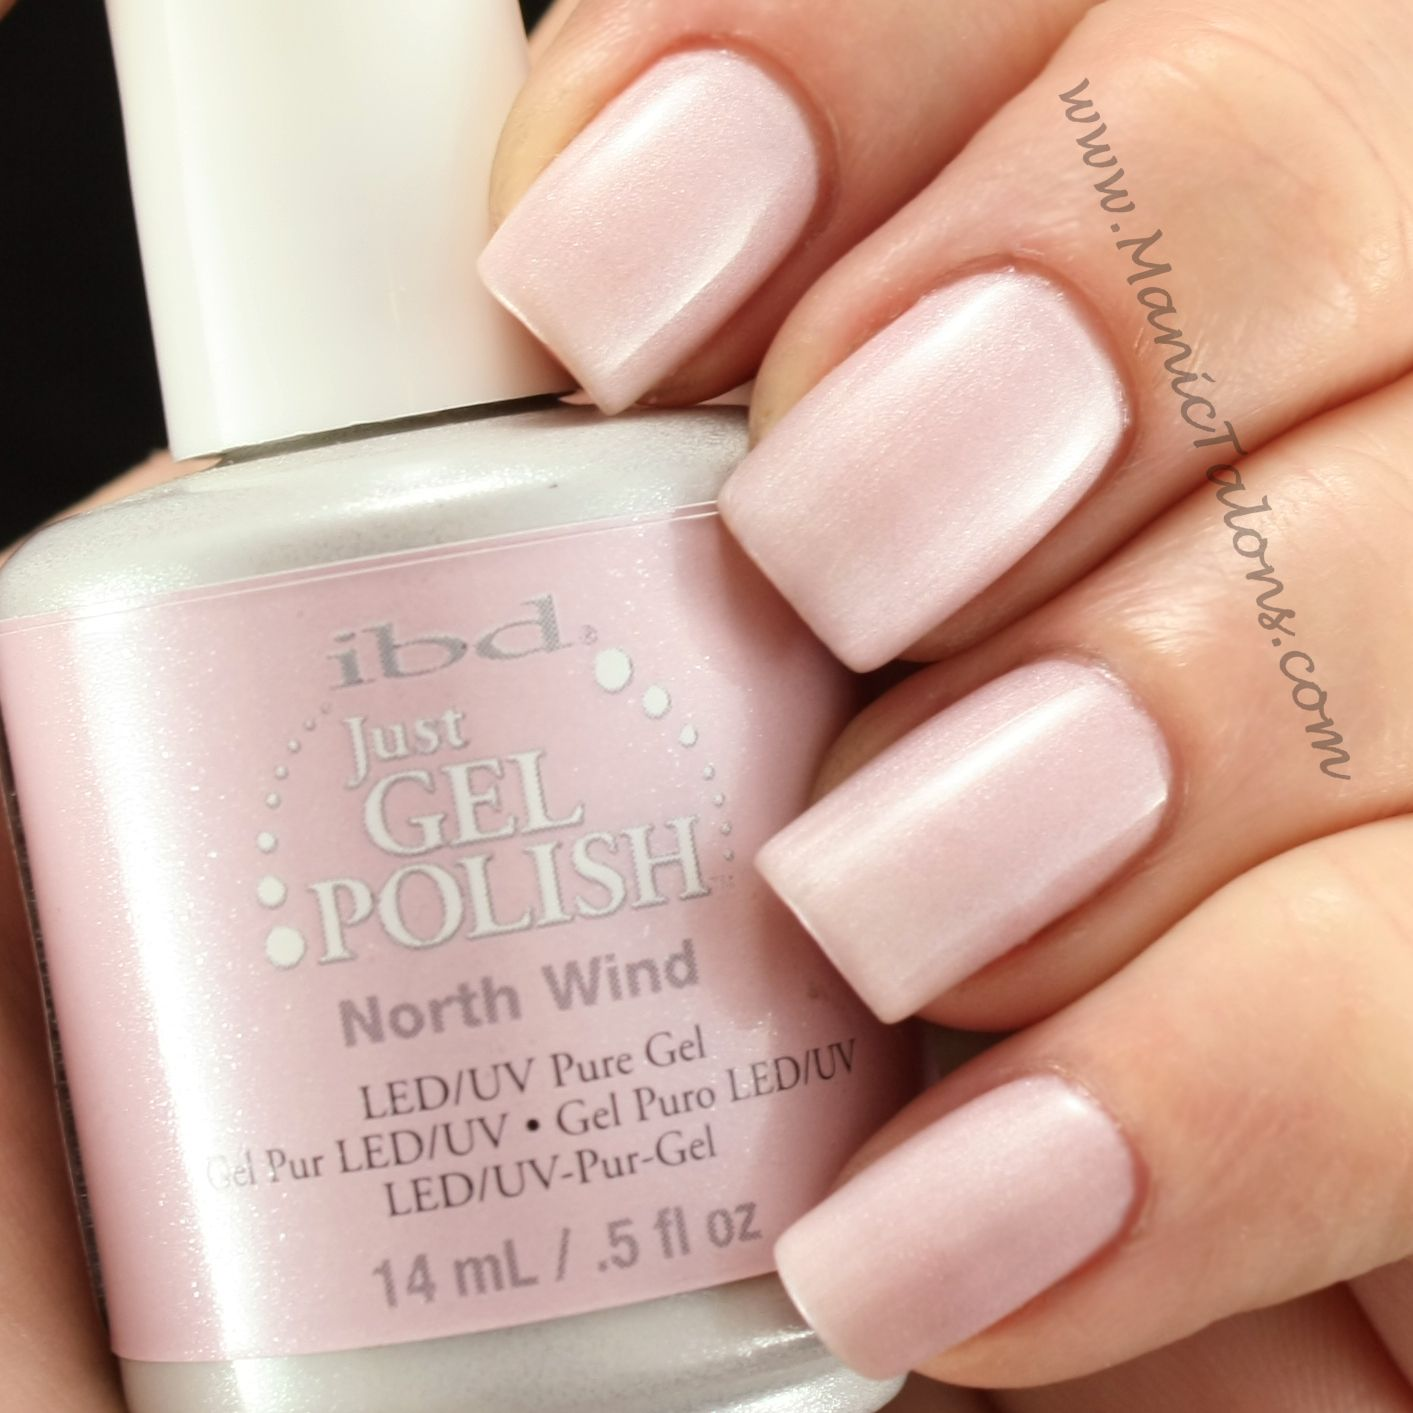 IBD Just Gel North Wind | Re-Pin Nail Exchange | Pinterest | Esmalte ...